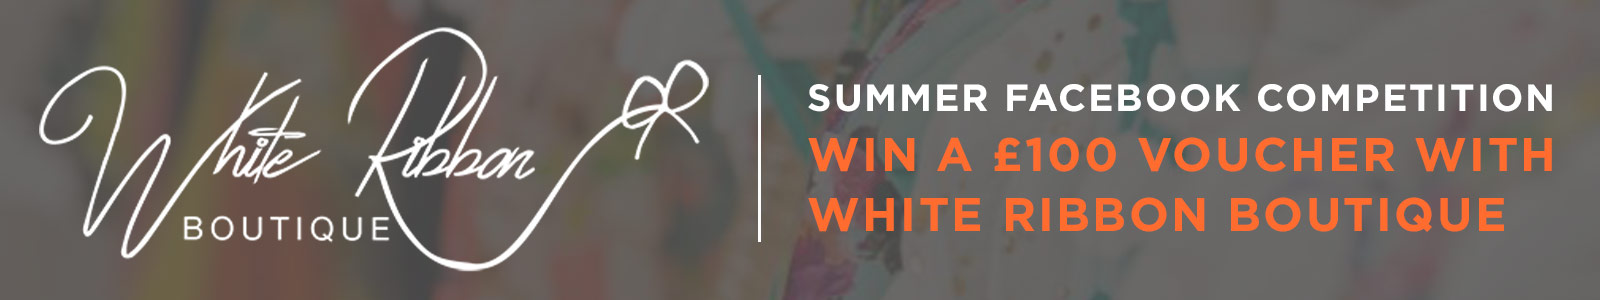 White Ribbon Summer Facebook Competition